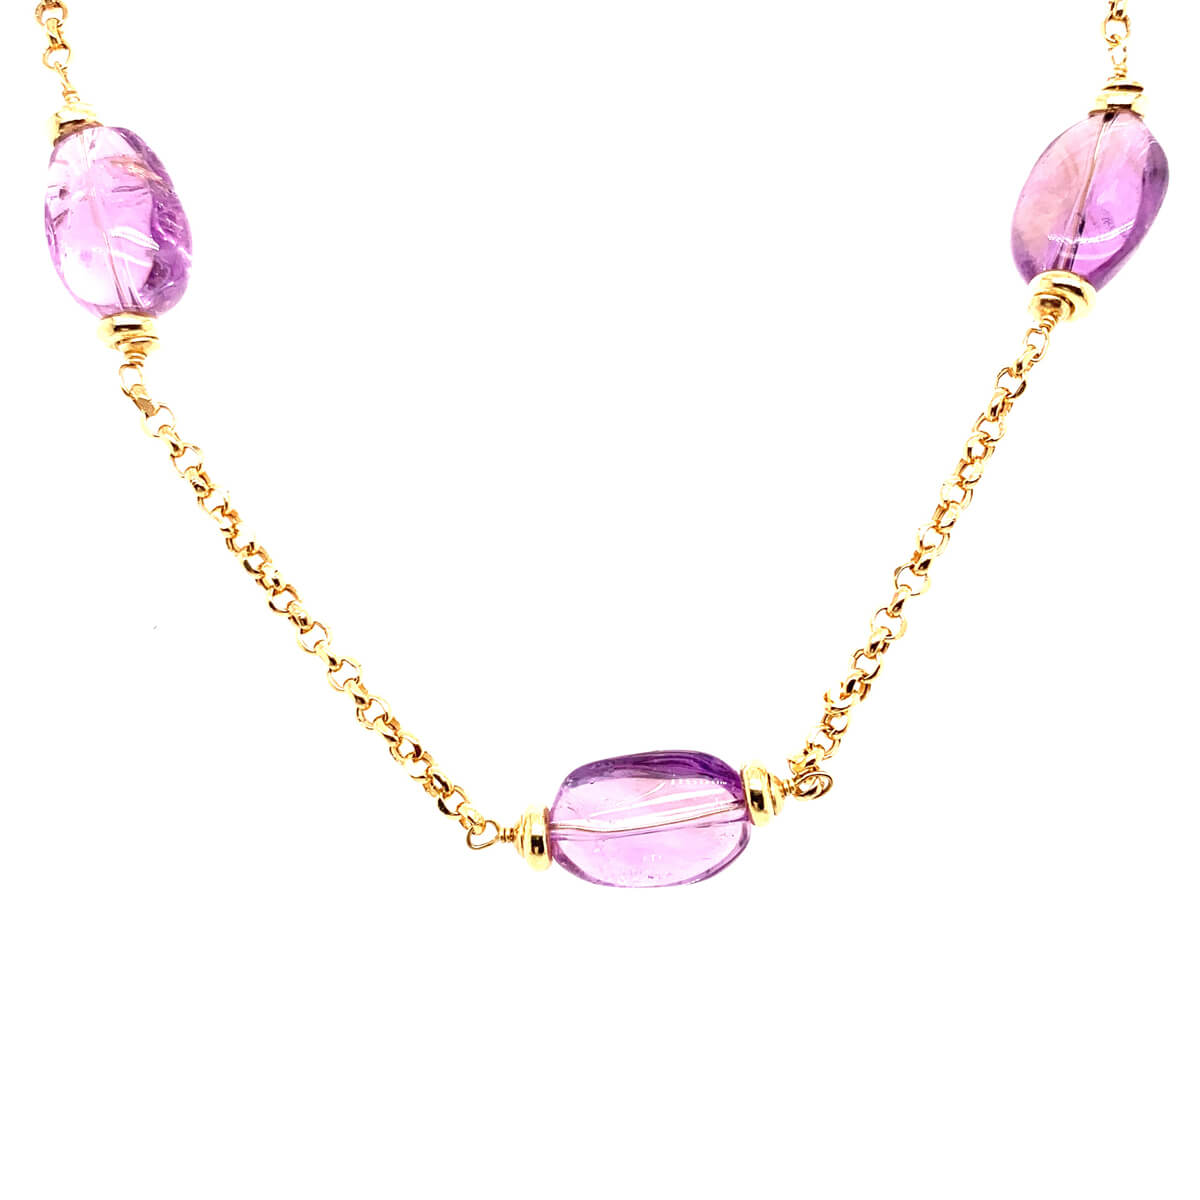 18ct Yellow Gold Chain & Amethyst Necklace